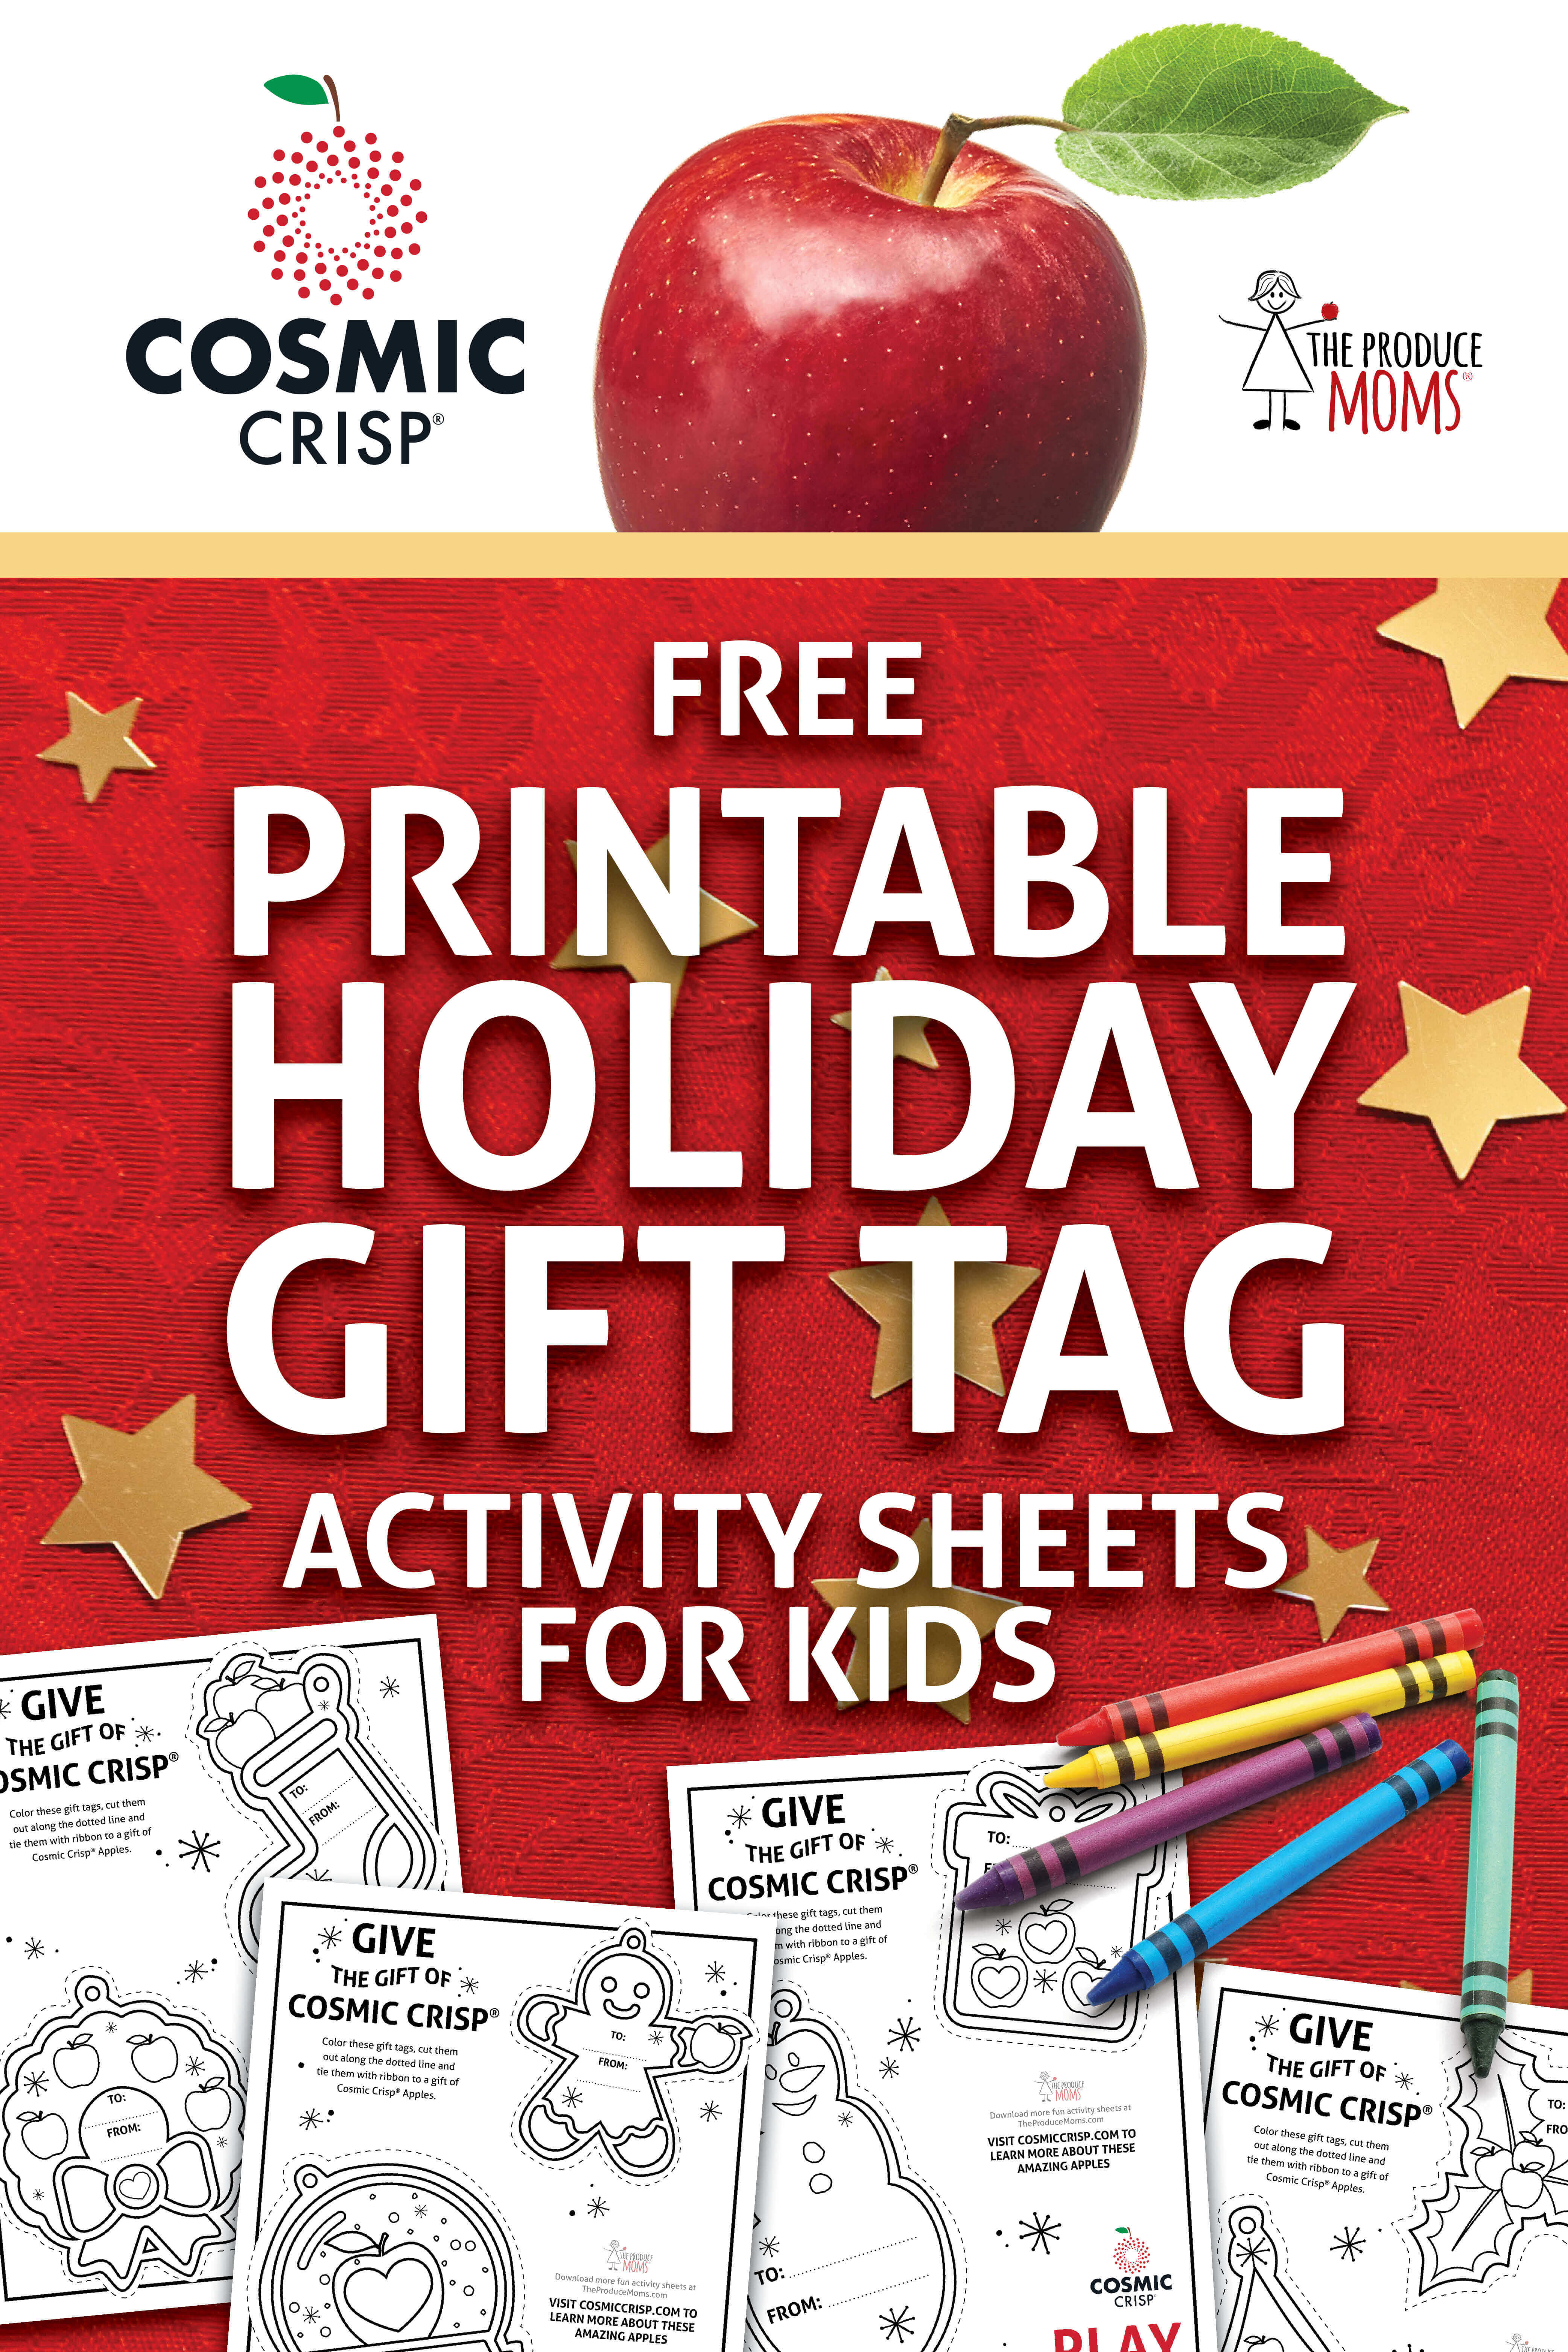 Give The Gift Of Cosmic Crisp® + Printable Gift Tags